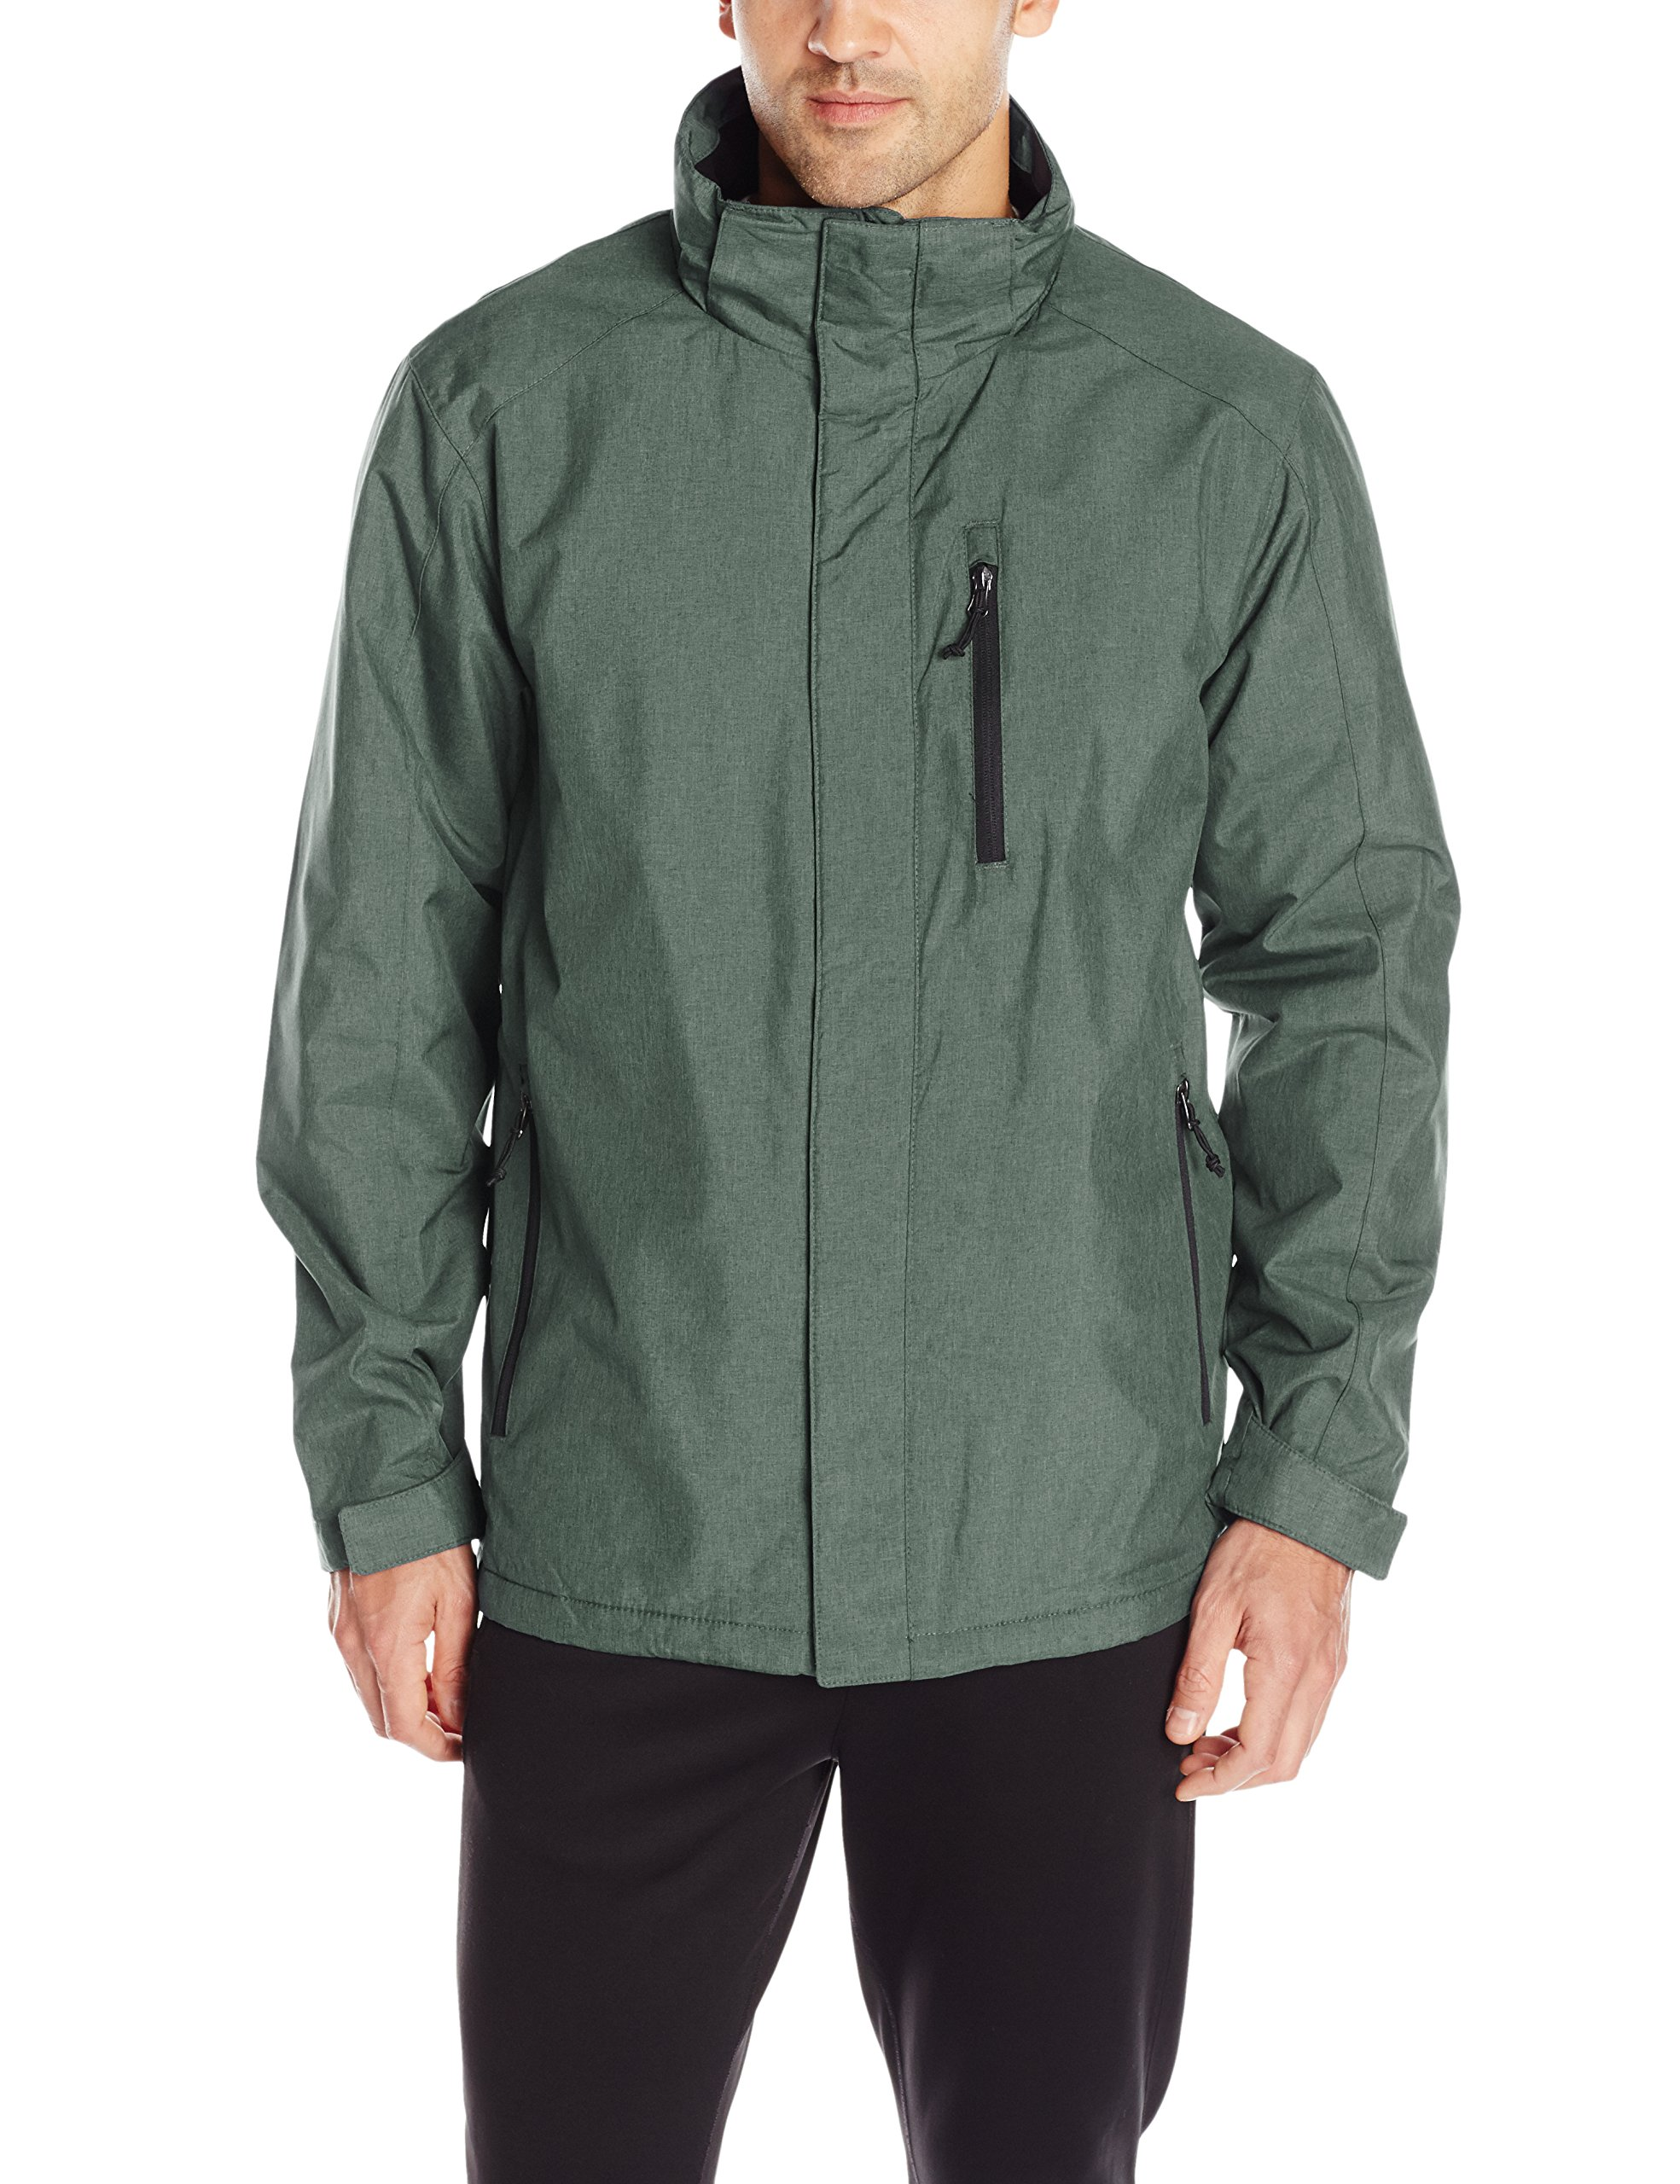 32Degrees Weatherproof Men's 3 in 1 Systems Jacket with Inner Fleece, Pine Melange, XX-Large by 32 DEGREES